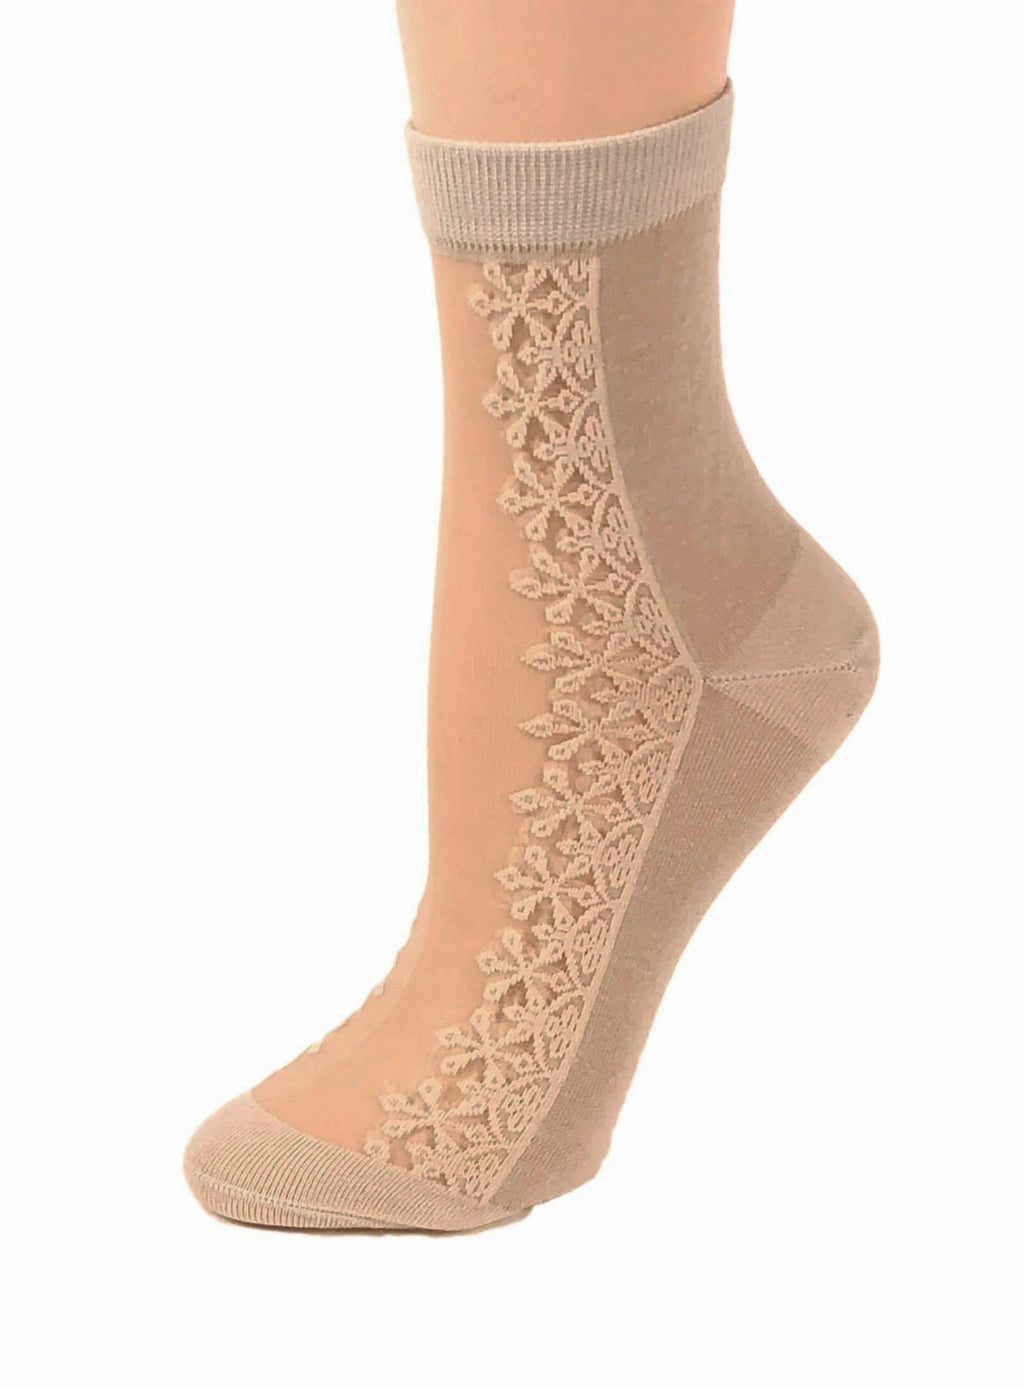 Soft Skin Sheer Socks - Global Trendz Fashion®